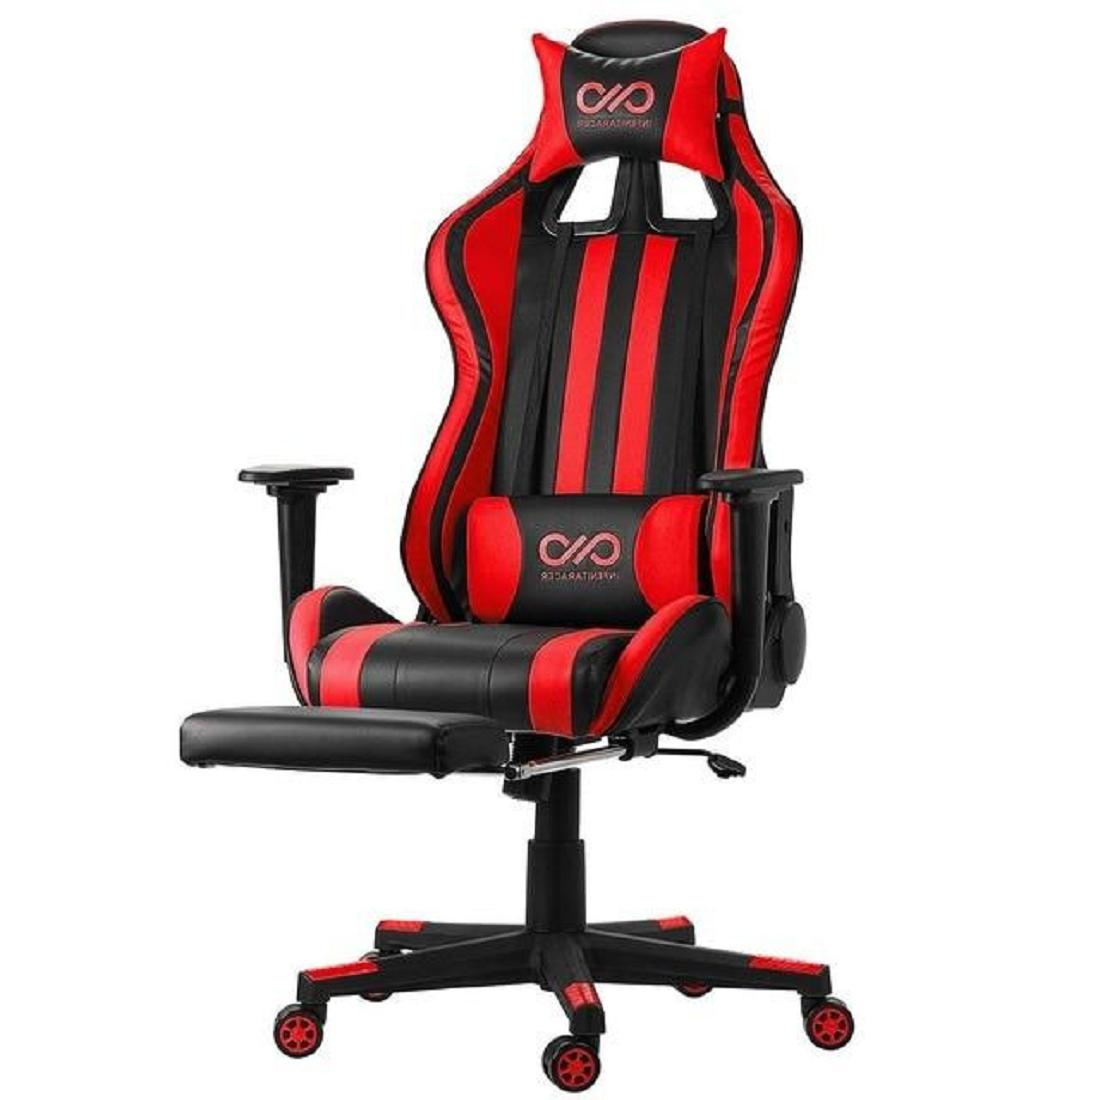 Lumbar High Back Leather Gaming Chair with Armrest Footrest